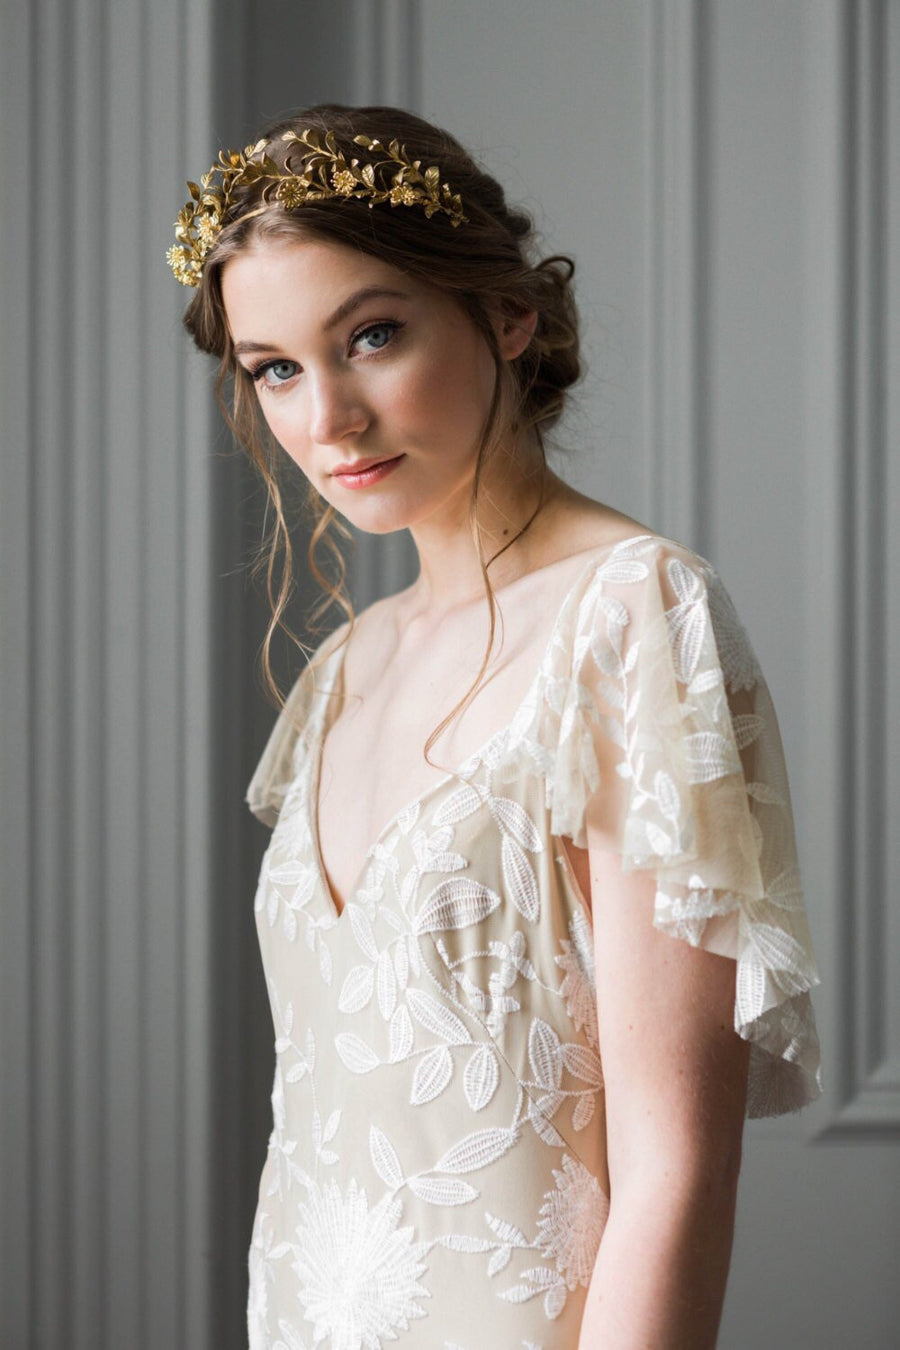 Bride wearing a gold headpiece made of replica anitque myrtle leaves